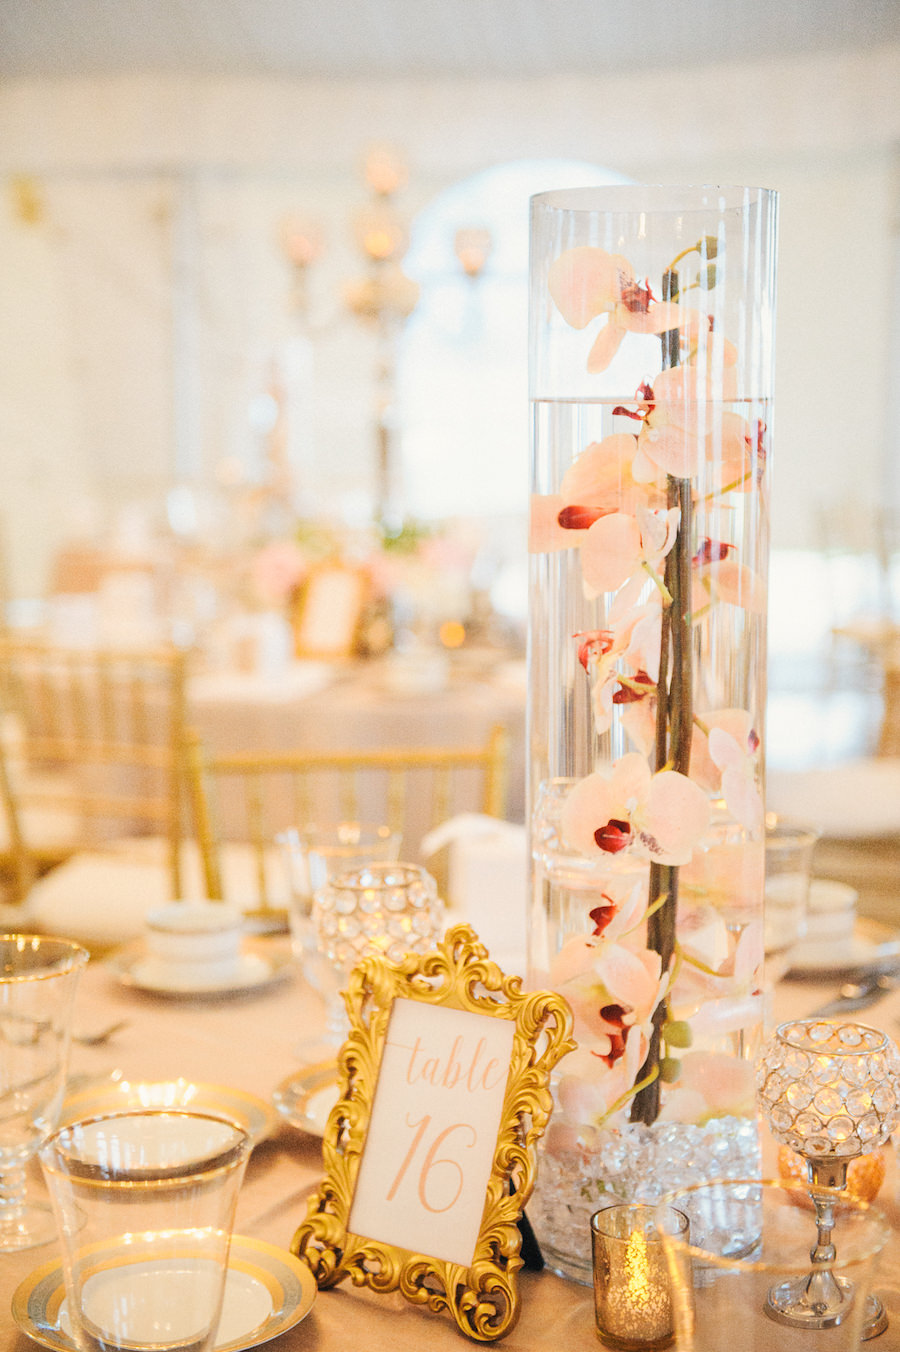 Blush and Gold Wedding Reception with Tall Submerged Orchids in Glass Vase Wedding Centerpieces on Blush Linens with Gold China and Chiavari Chairs   Sarasota Wedding Planner NK Productions